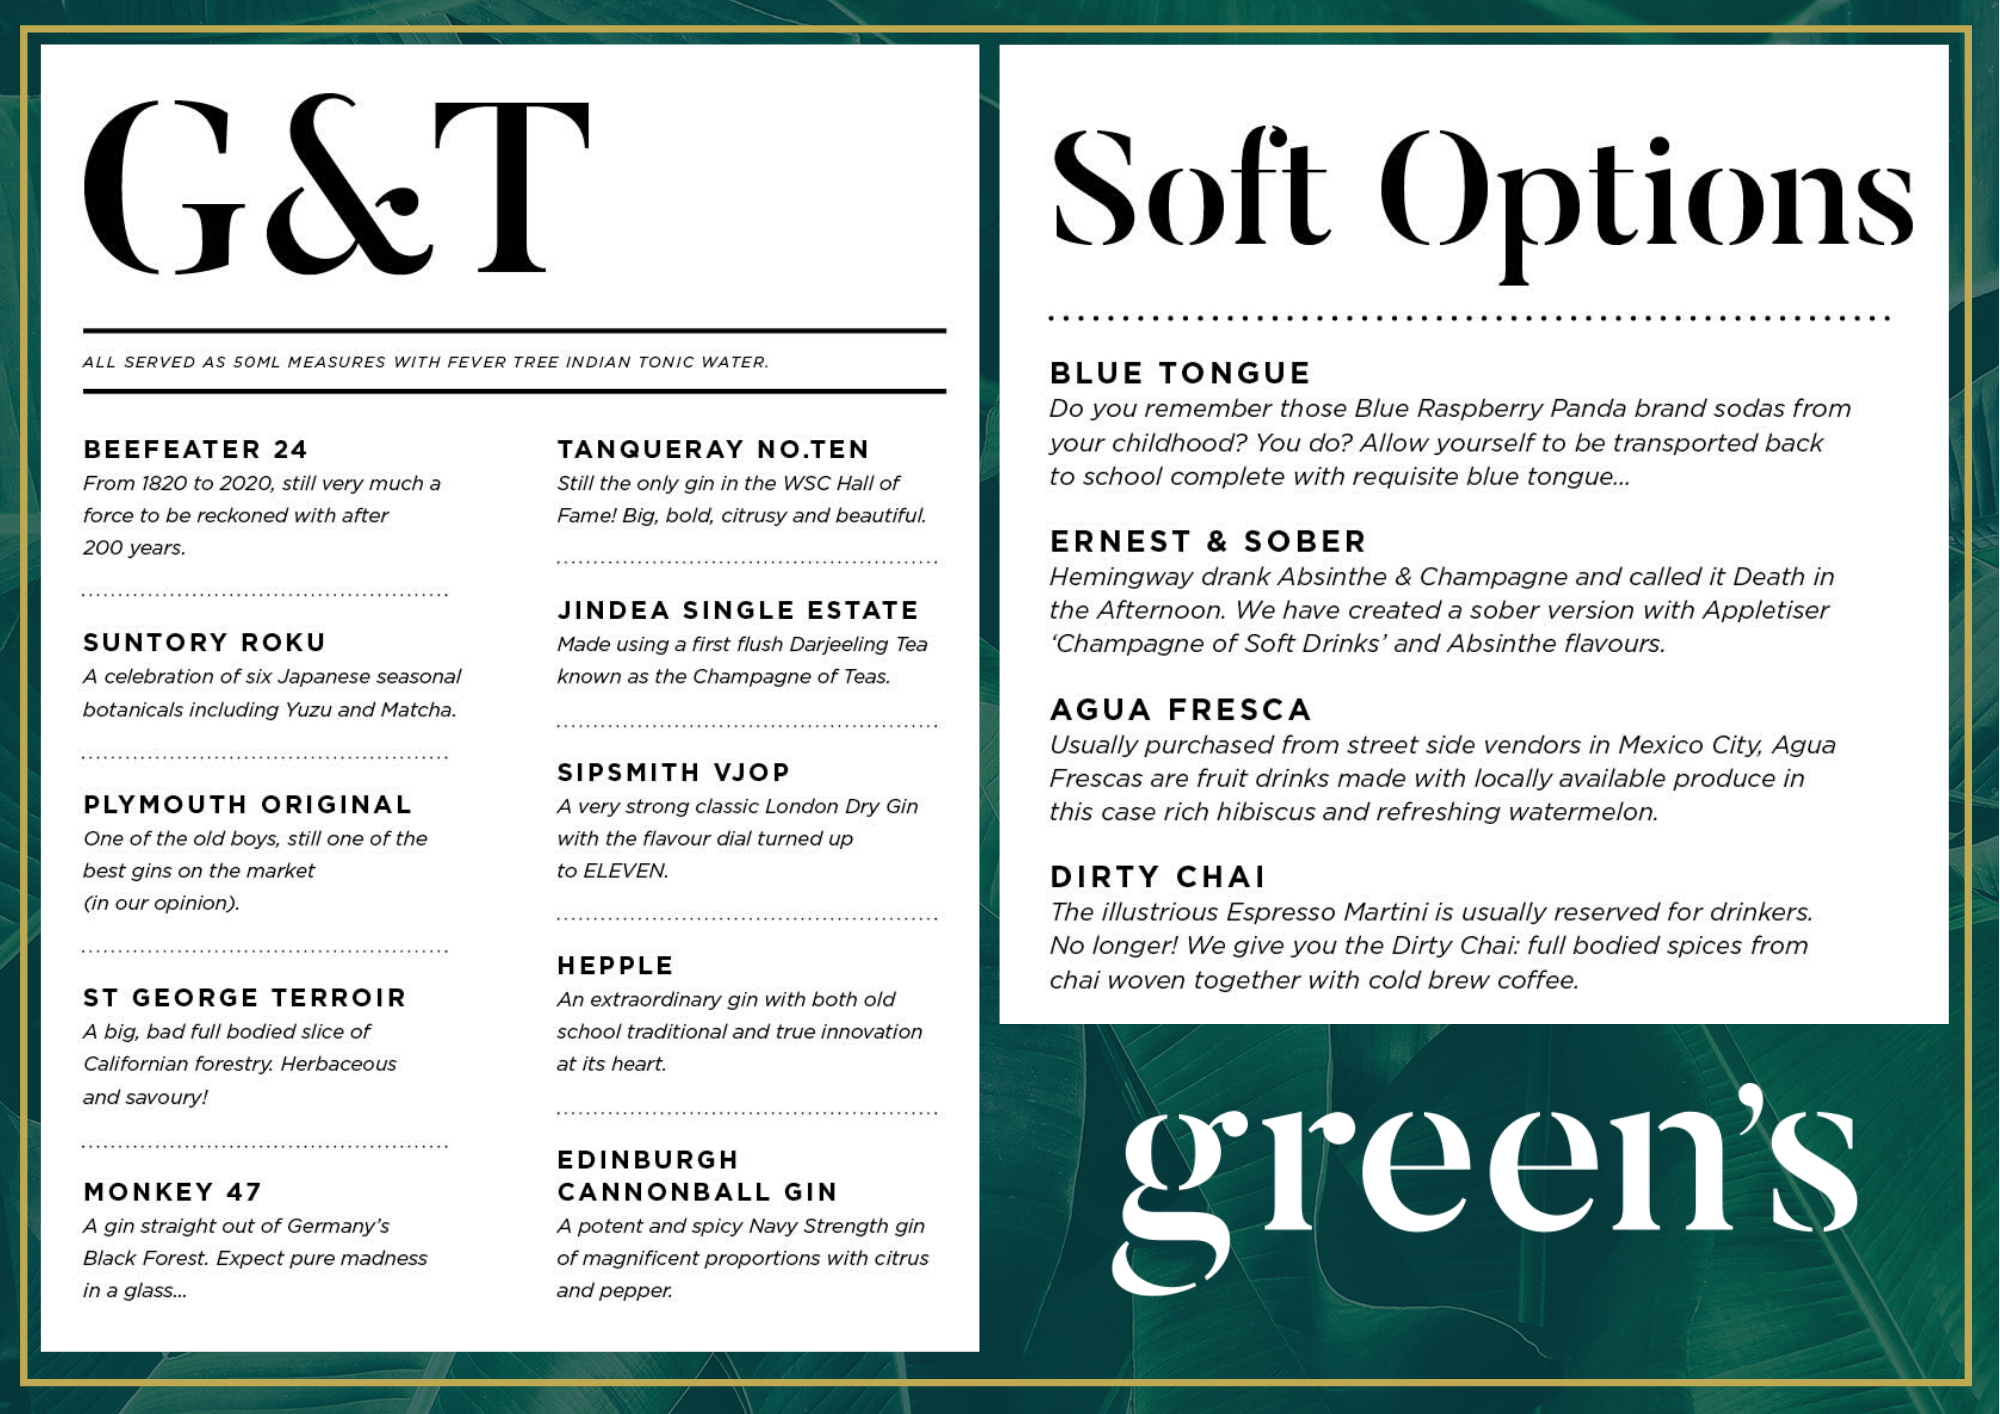 Gin & Tonic and Soft Options